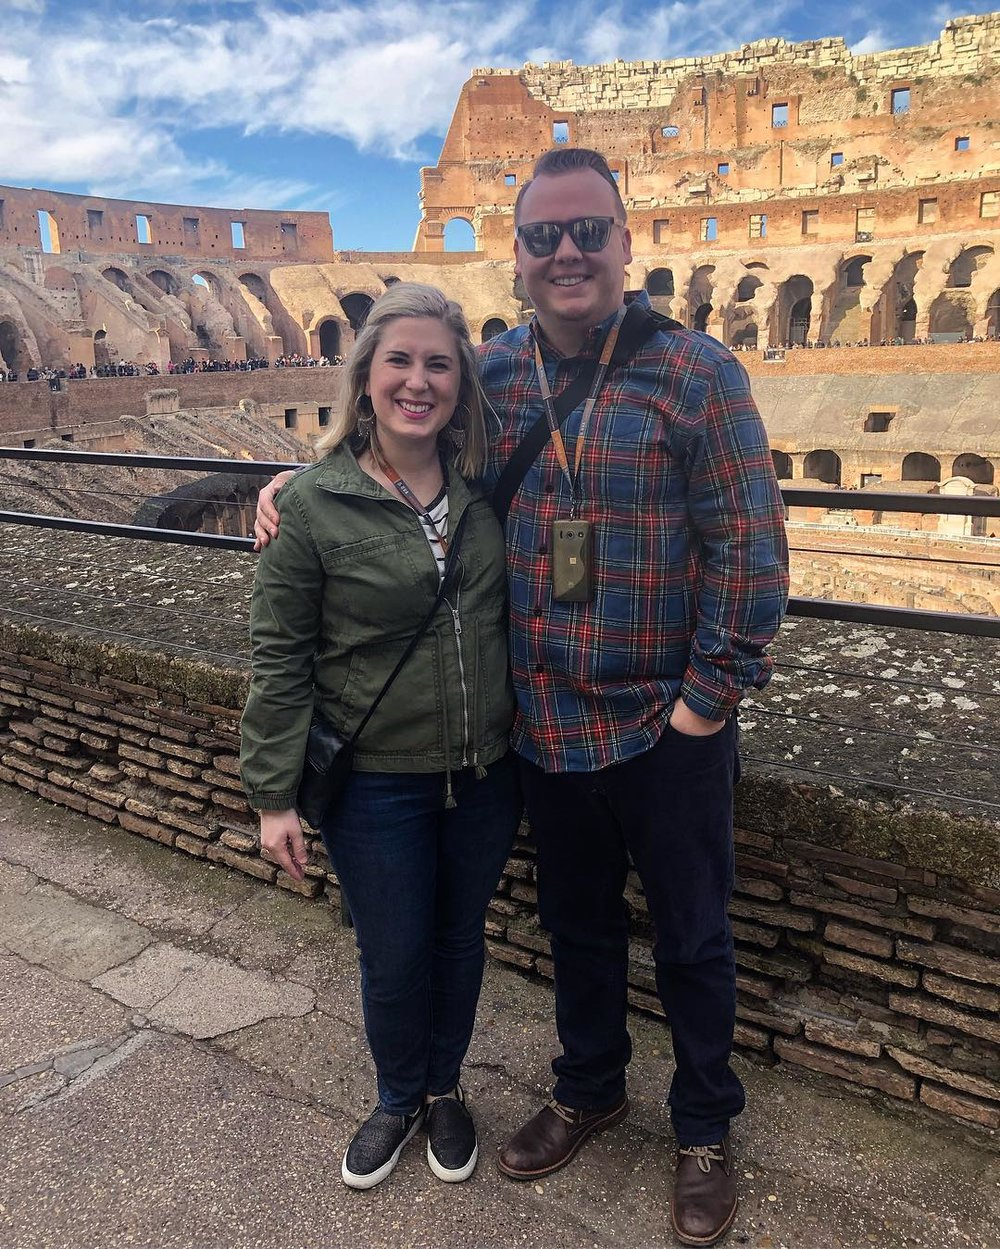 millennial_marriage_rome_colosseum